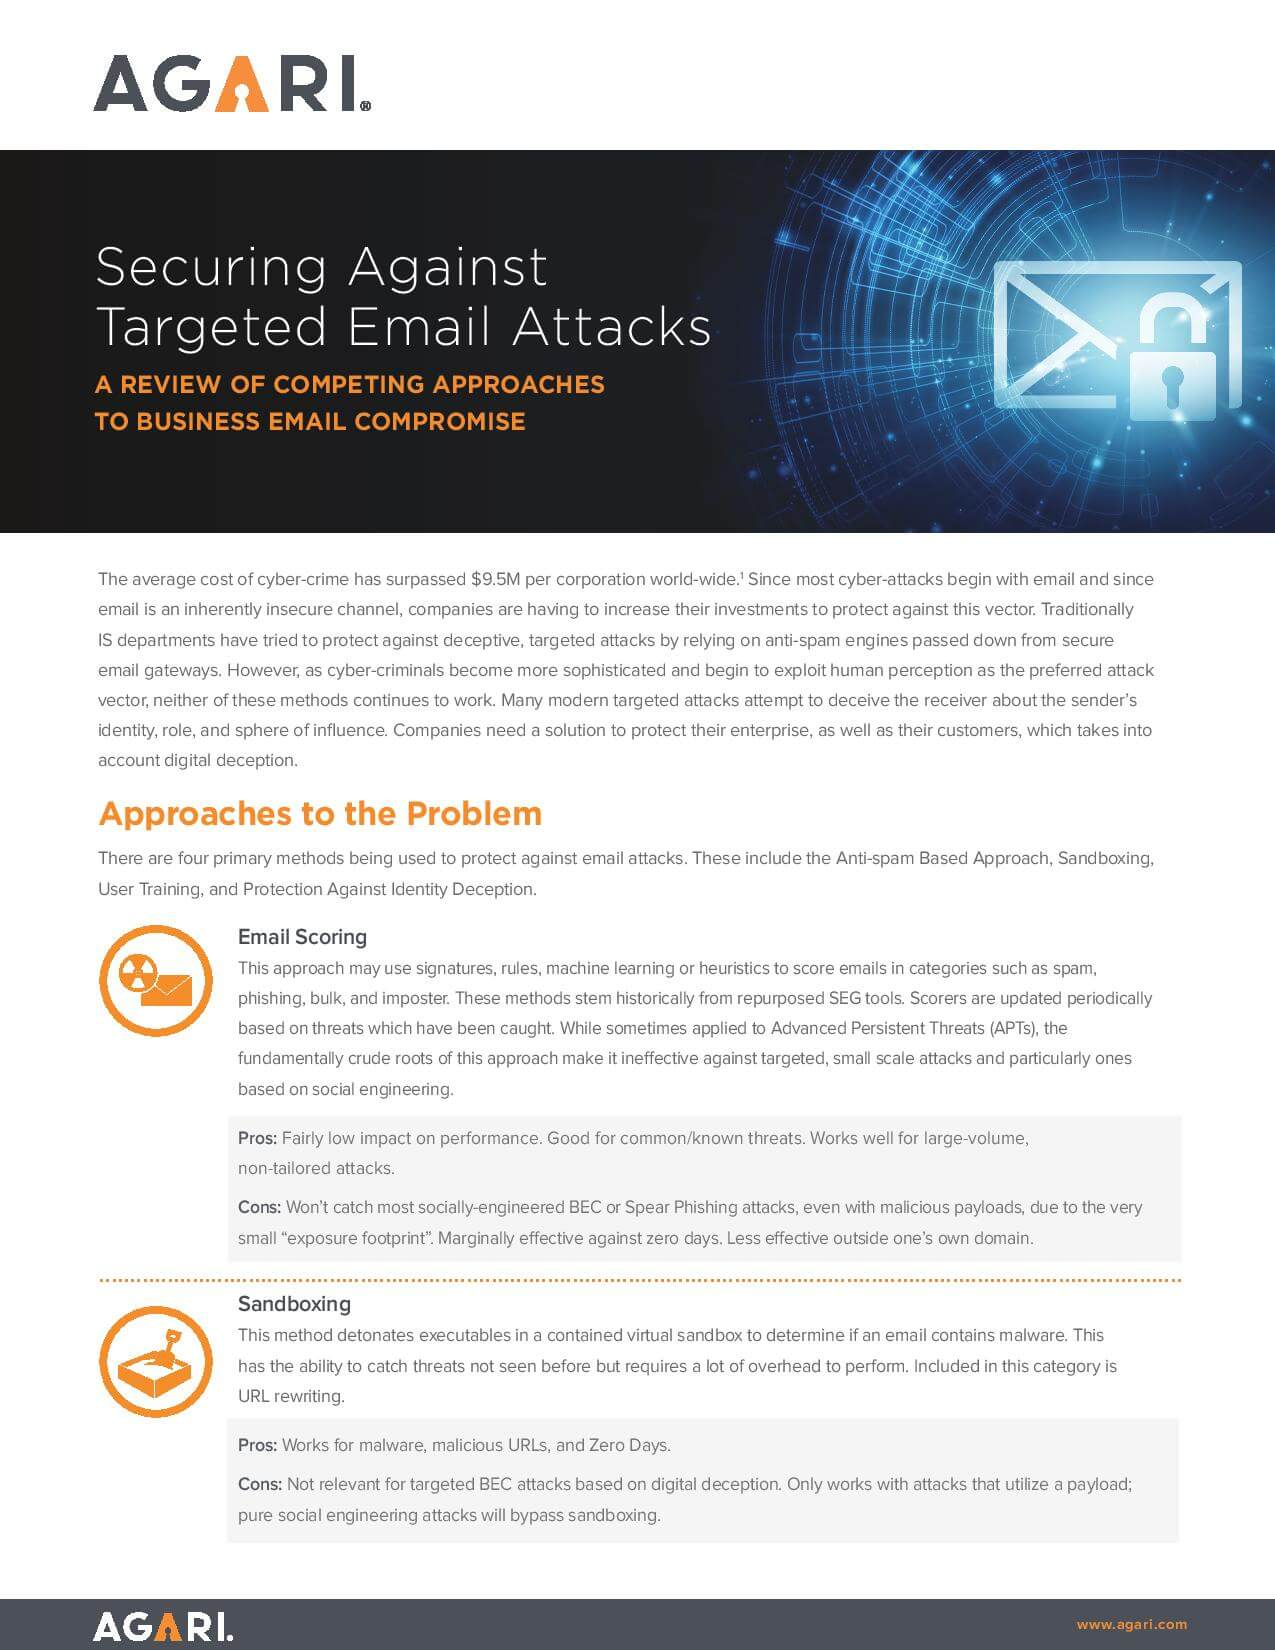 Targeted email attacks